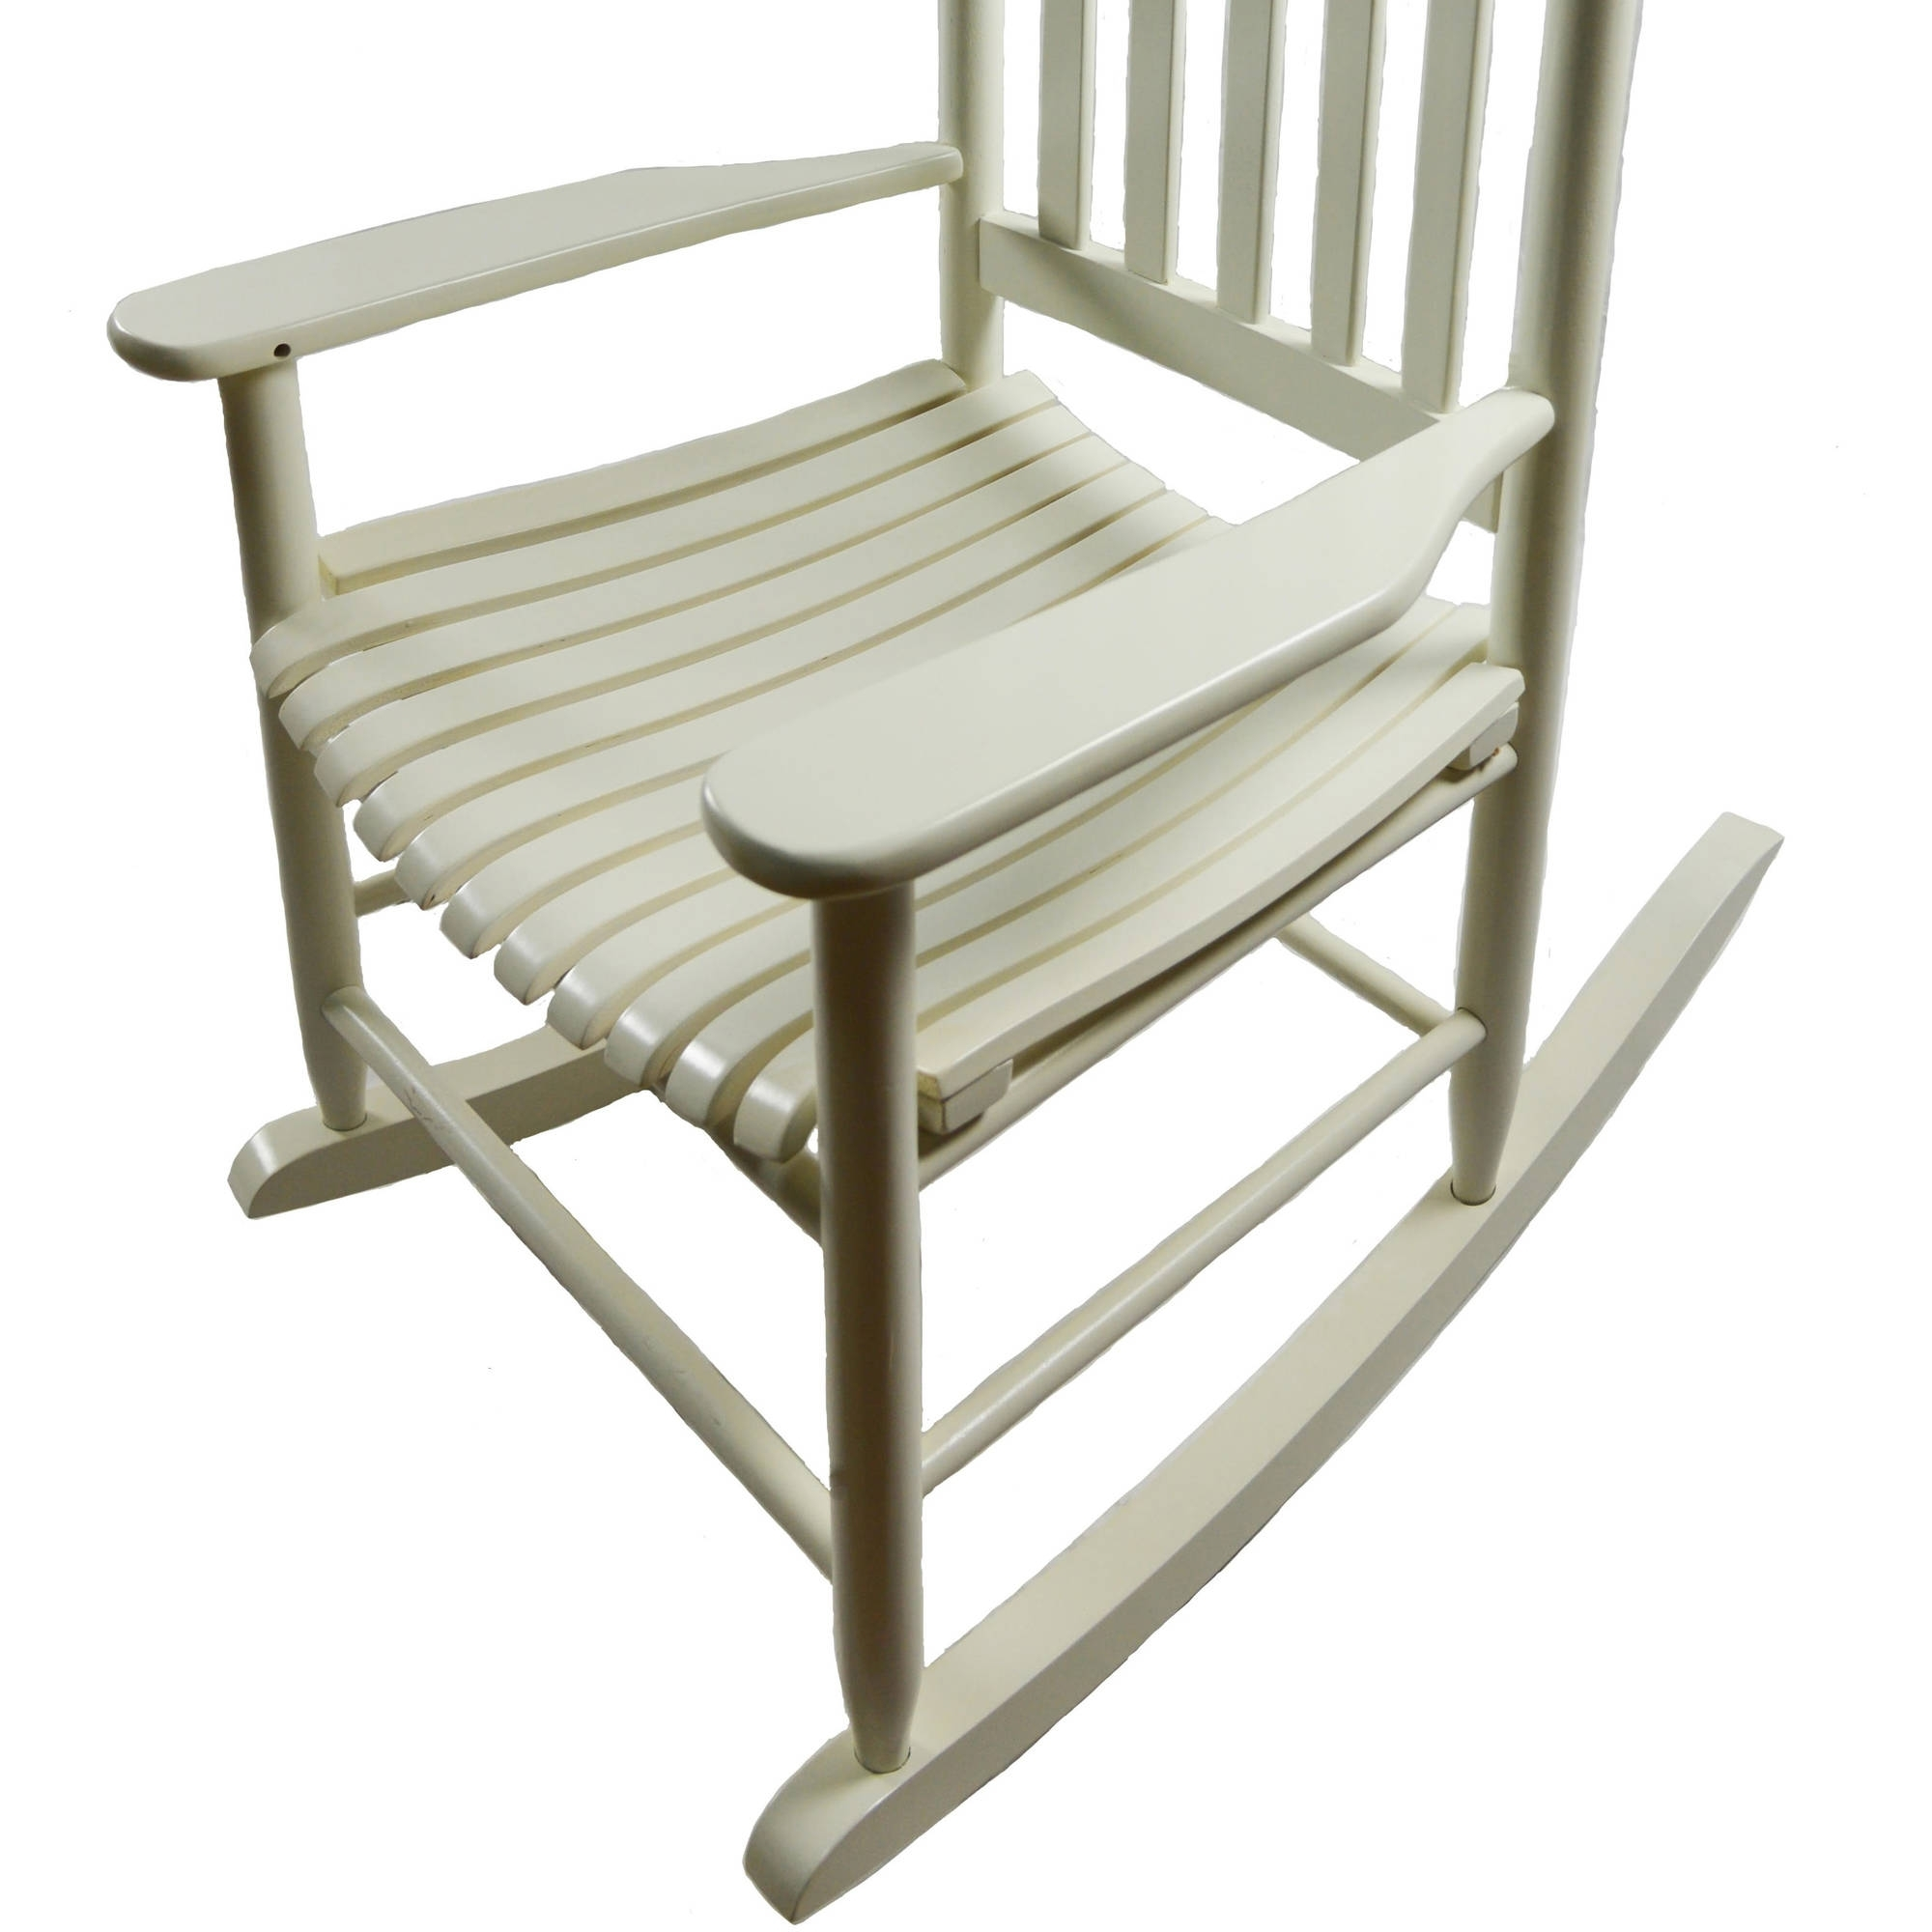 Mainstays Outdoor Wood Rocking Chair – Walmart Pertaining To Well Known Rocking Chairs At Walmart (View 10 of 20)